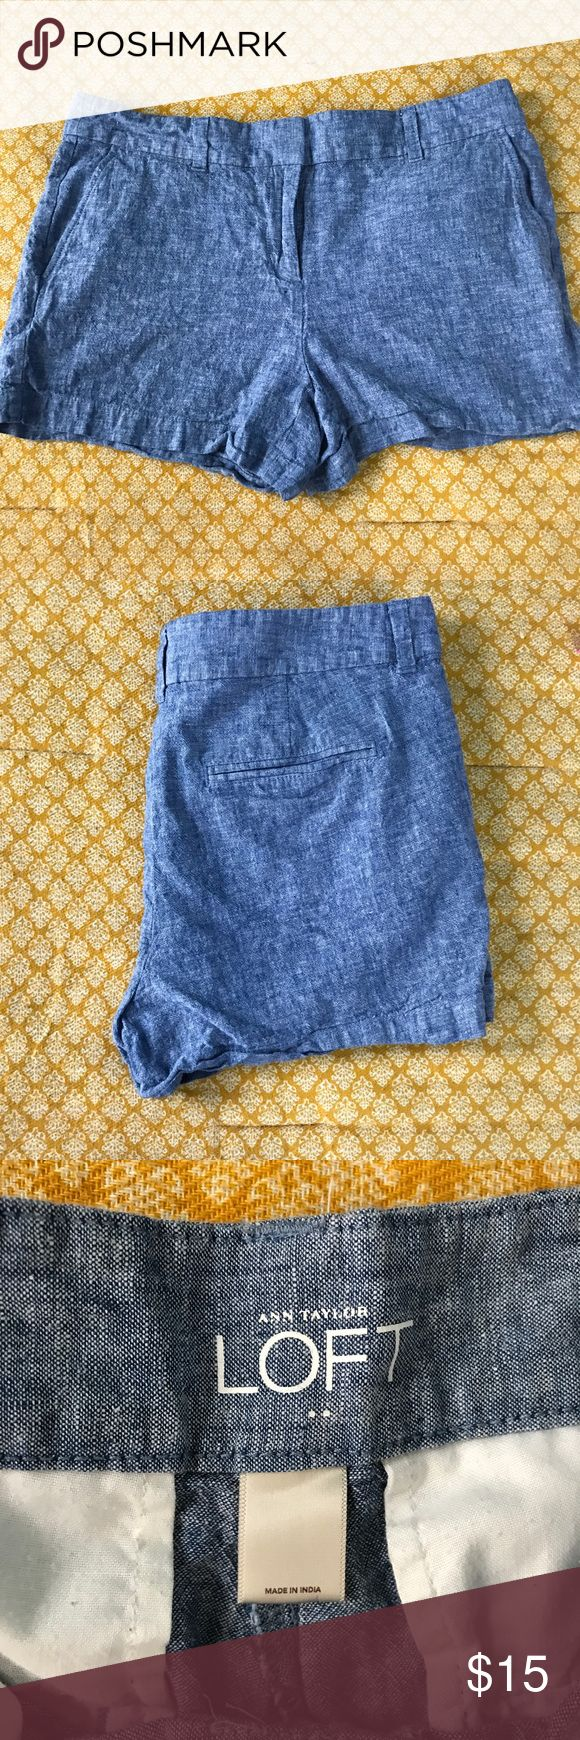 """Loft Factory Chambray 4"""" Shorts Size 8! Ann Taylor Loft Outlet Chambray 4"""" Shorts. Cute and light and perfect to pair with Sperrys and a striped shirt ☺️ Measurements: 17"""" waist, Rise 9 1/2"""" LOFT Shorts"""